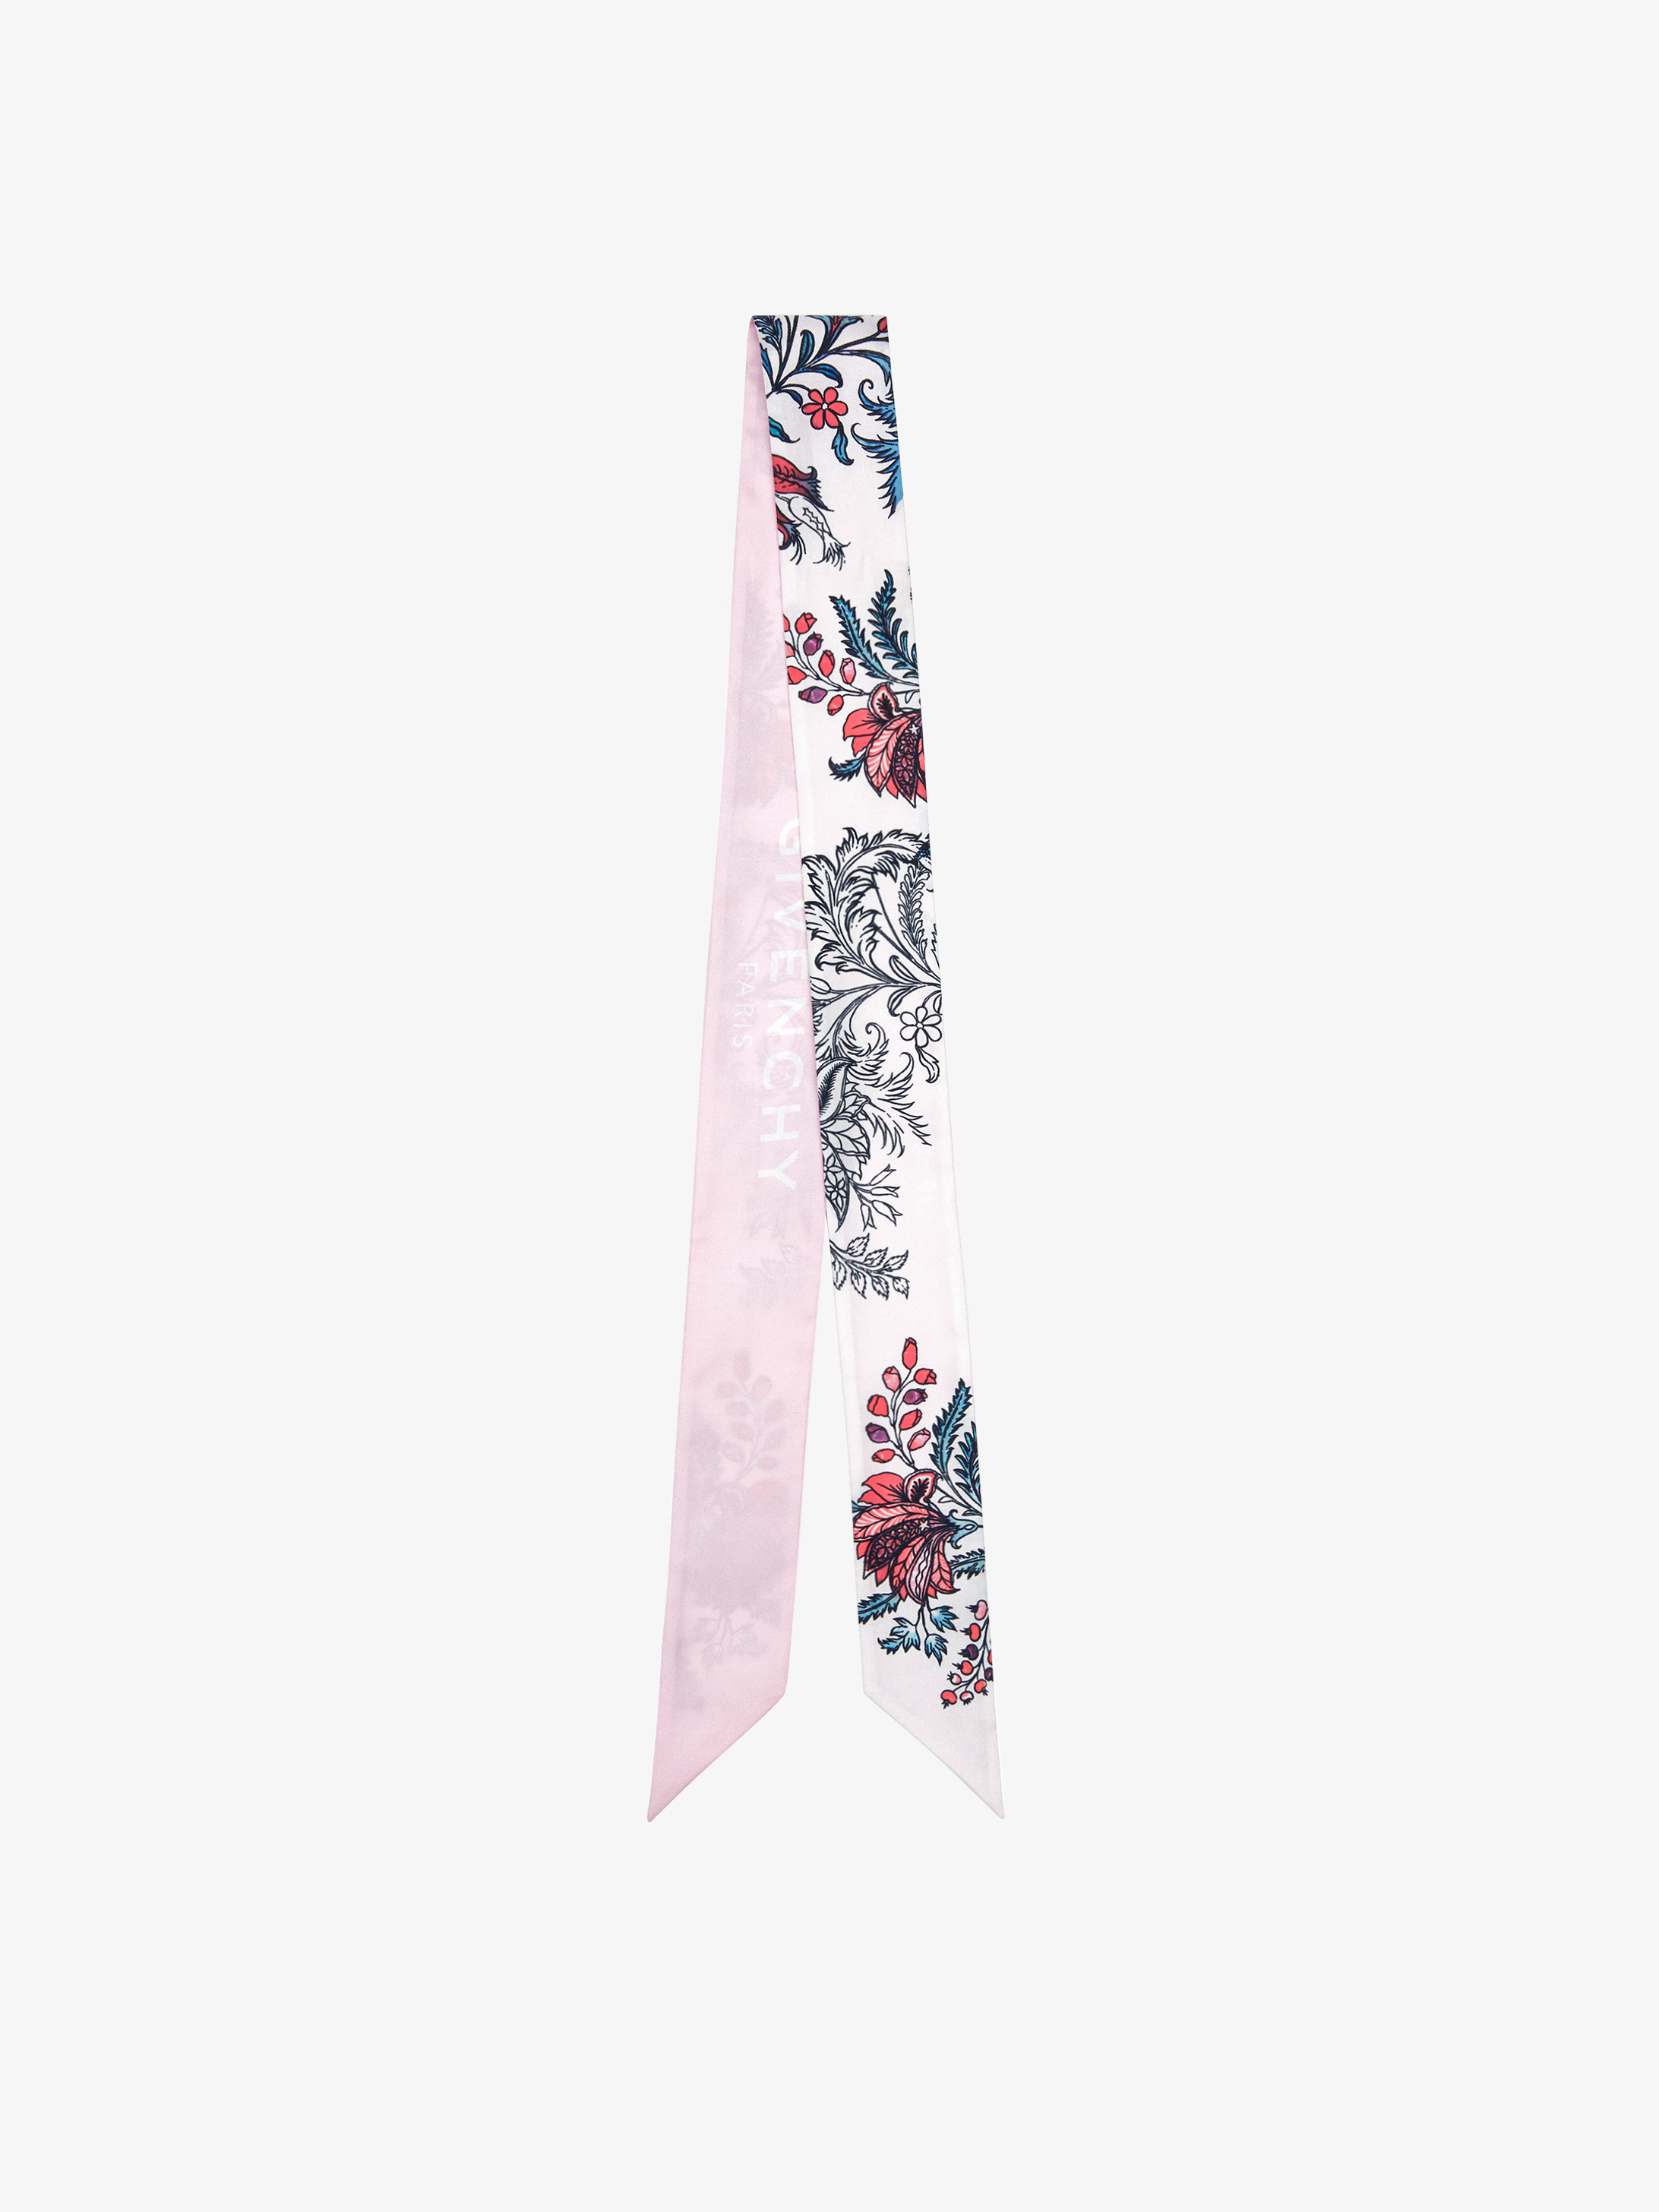 GIVENCHY heandband in floral printed silk